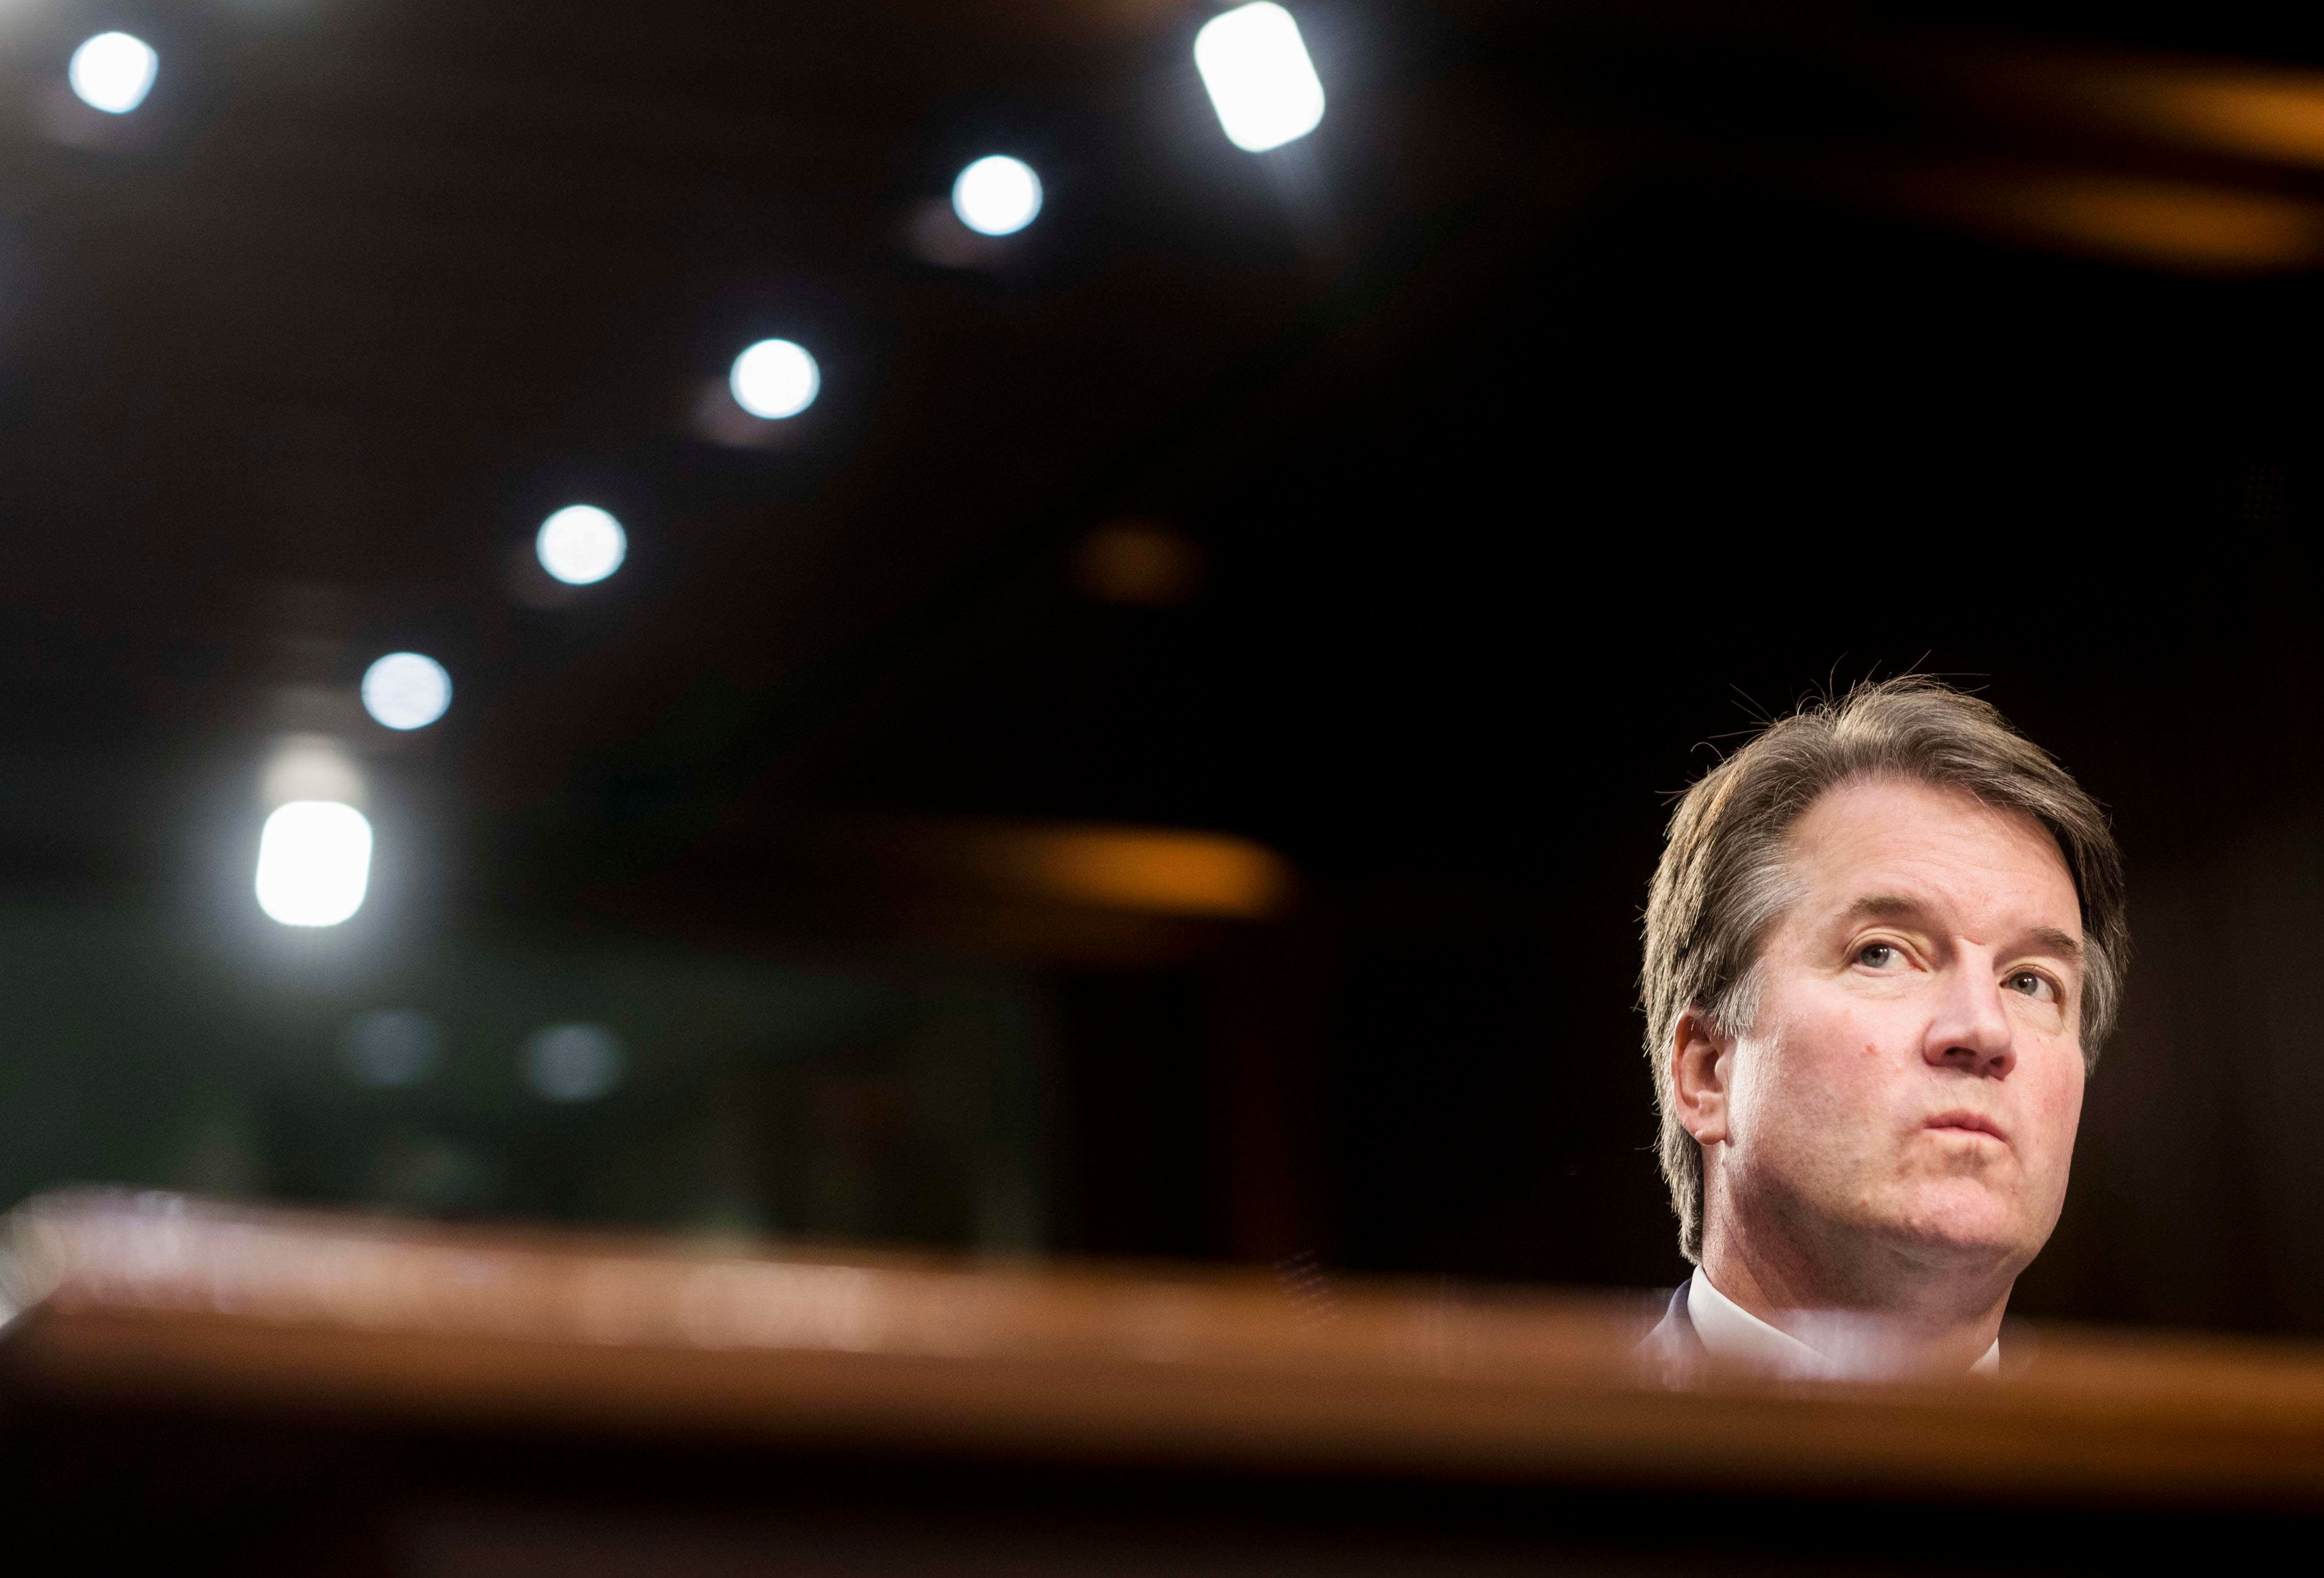 Being 'Young And Stupid' Has Nothing To Do With The Brett Kavanaugh Assault